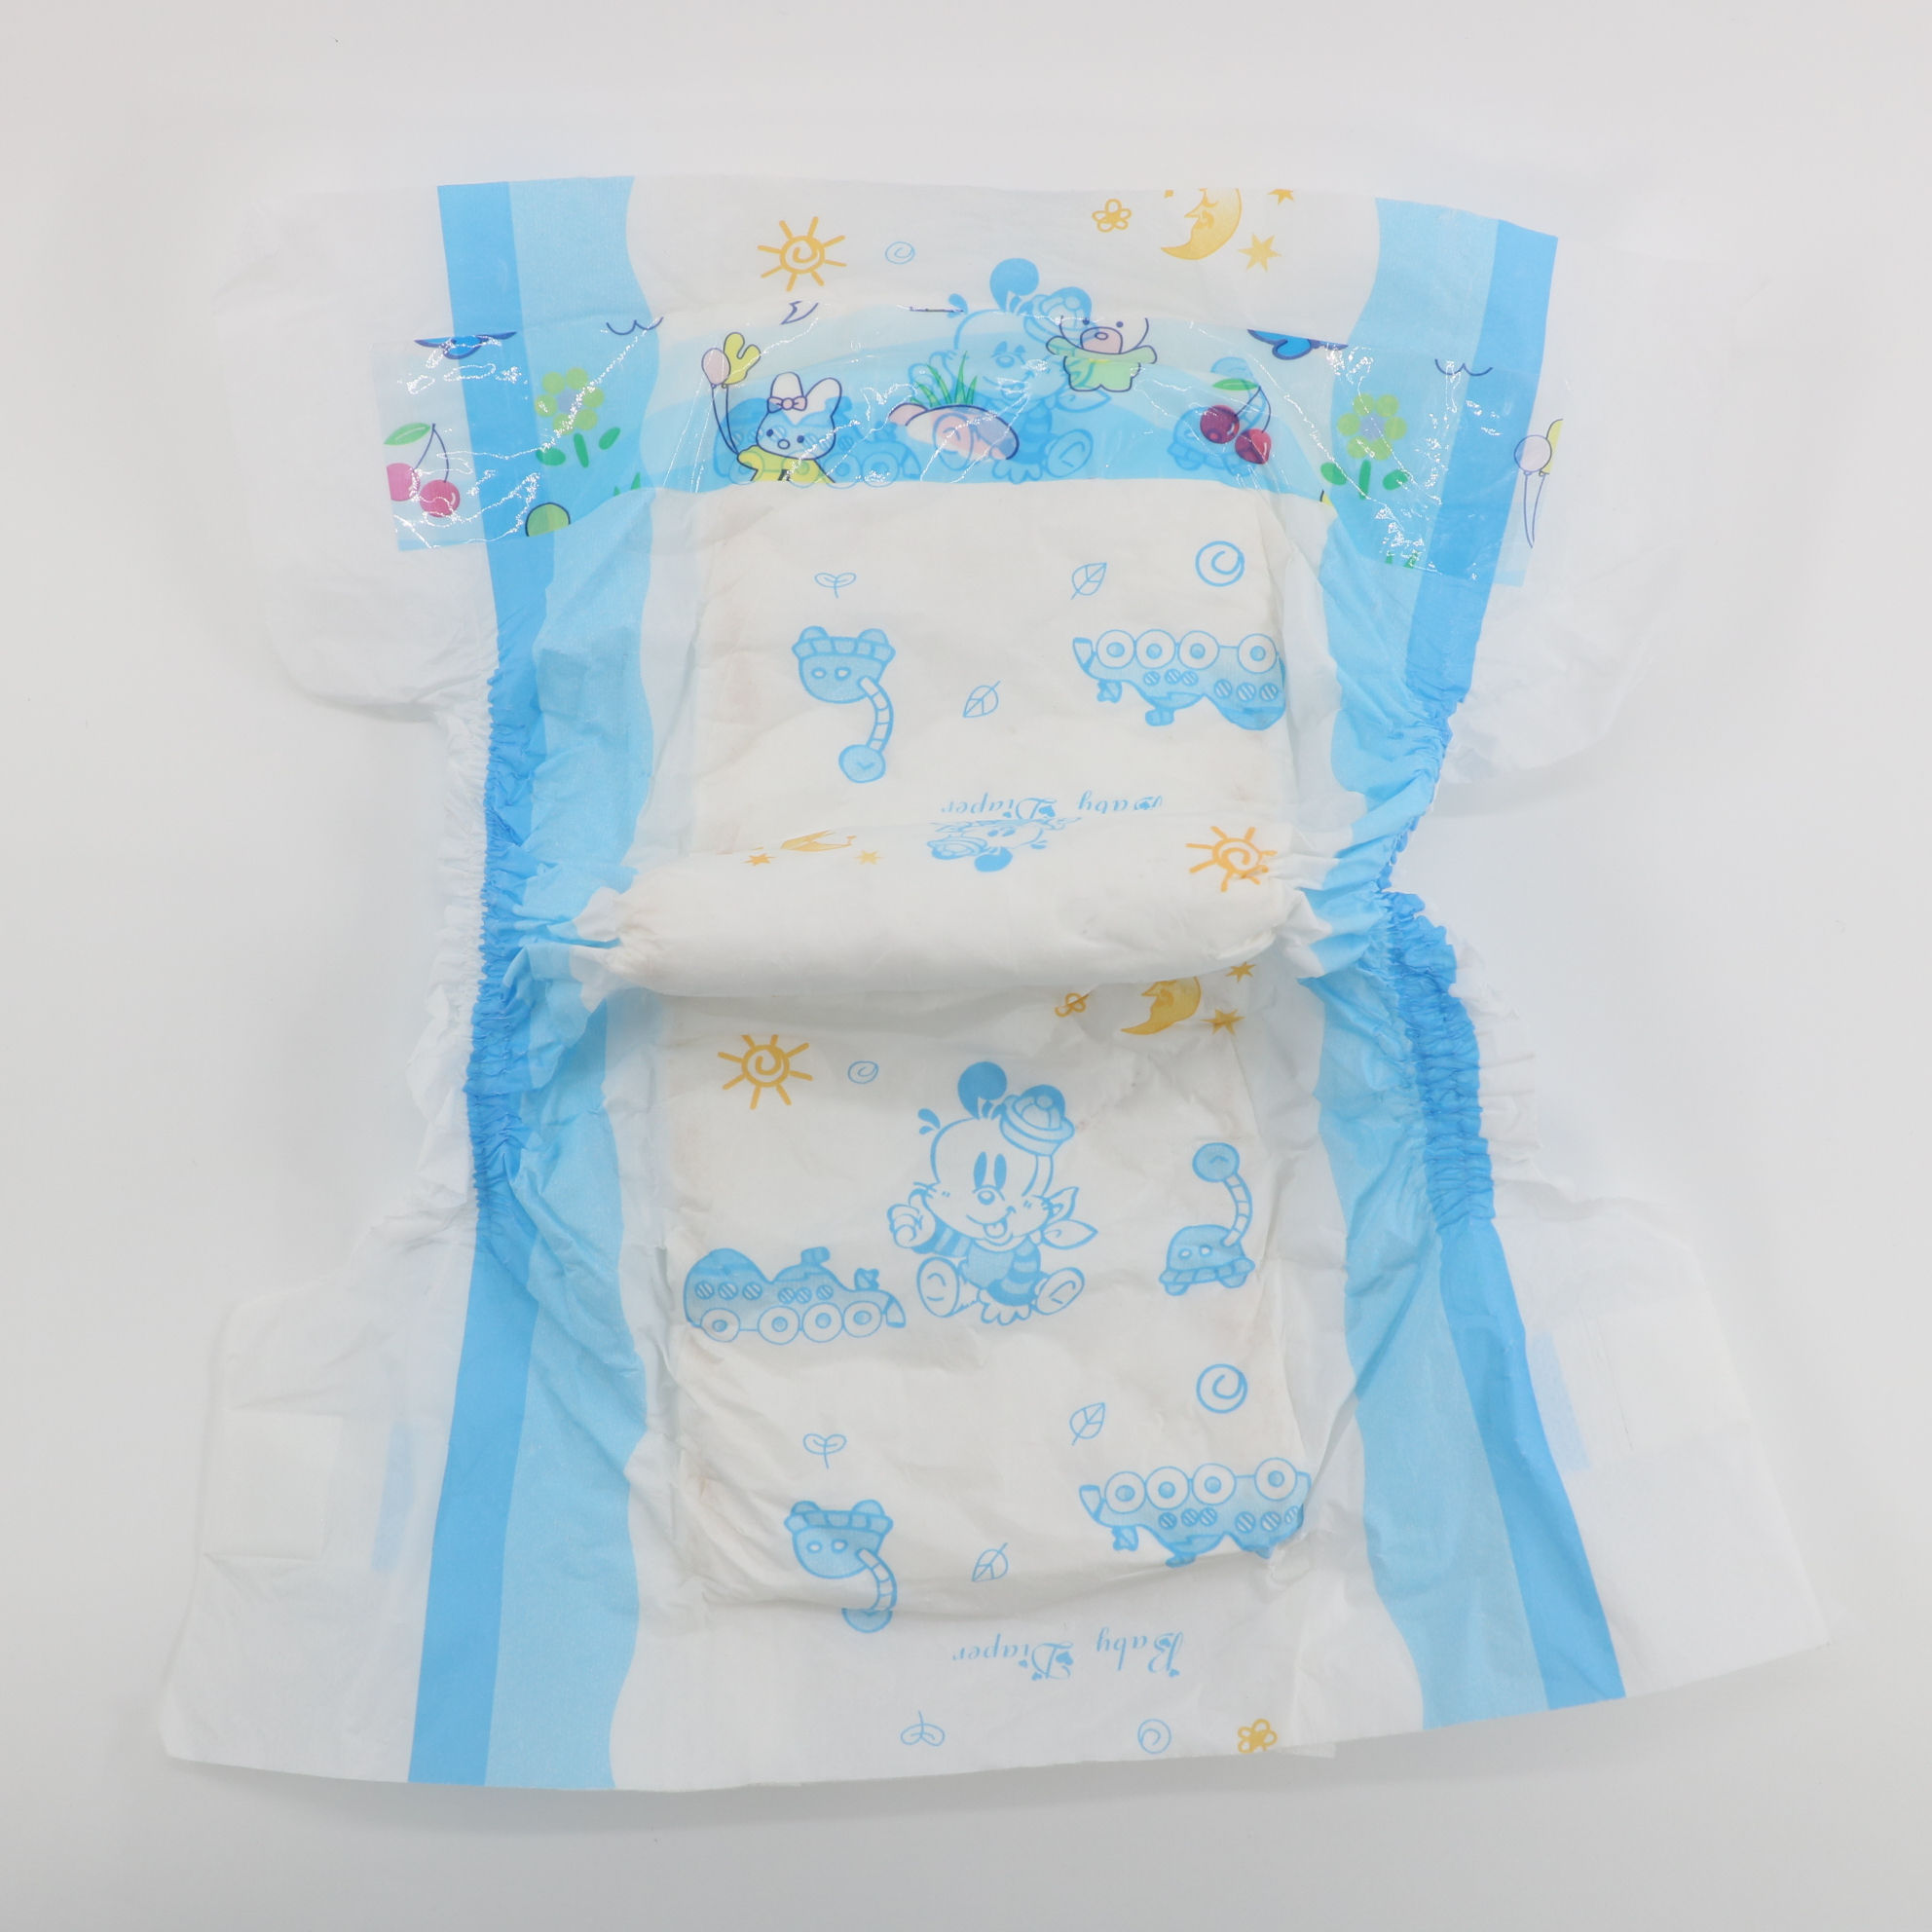 wholesale baby diapers manufacturer biodegradable disposable cloth diapers cotton material color print cheap PE baby diapers